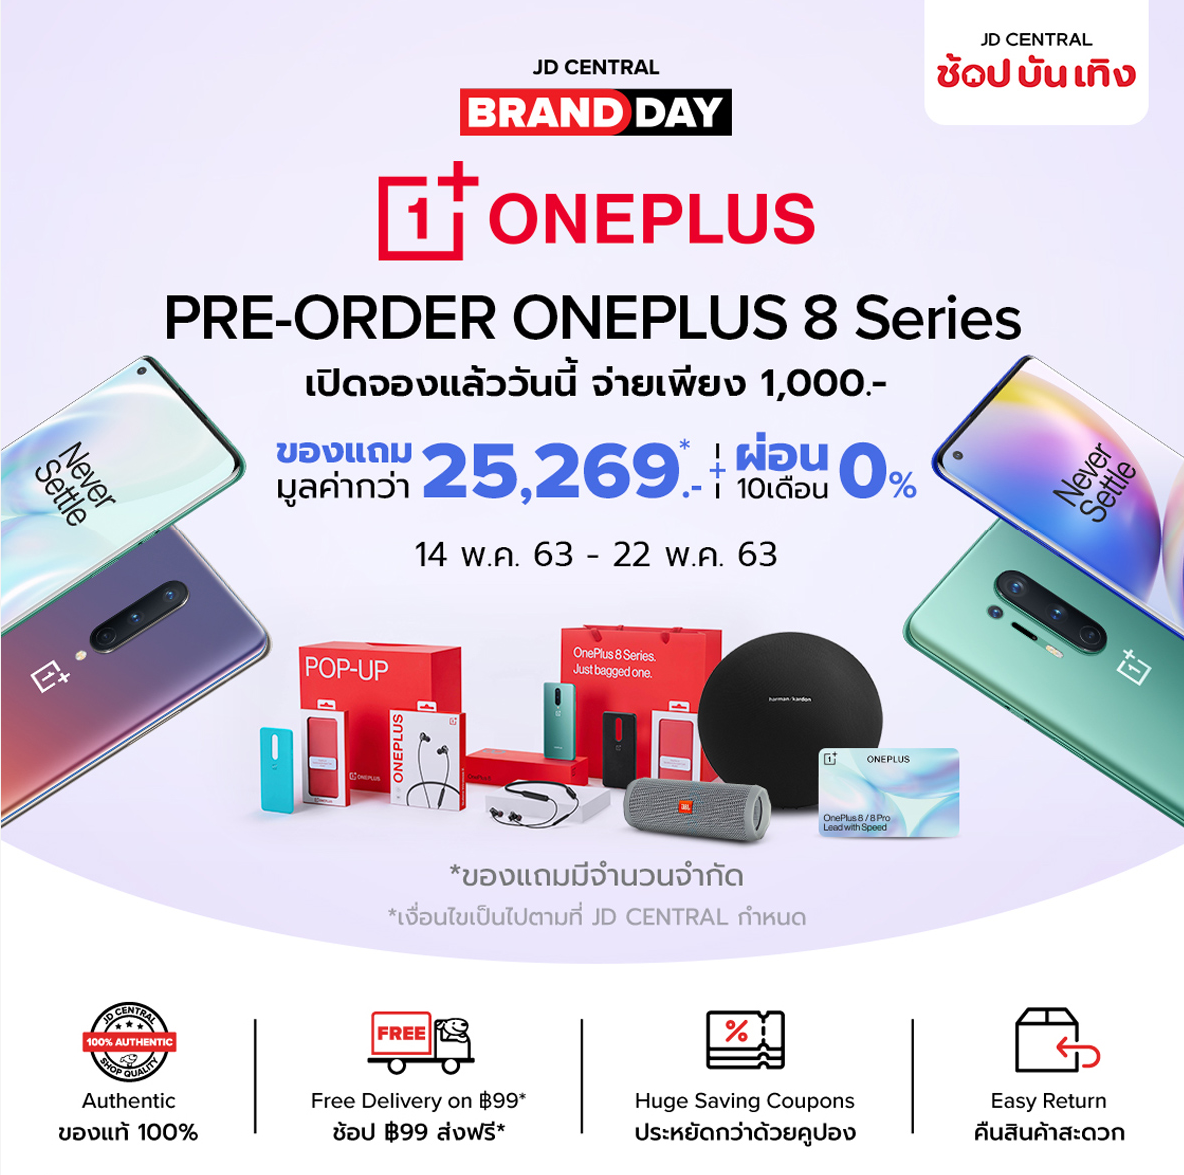 Pro-Pre order OnePlus-8 Series JD Central 01